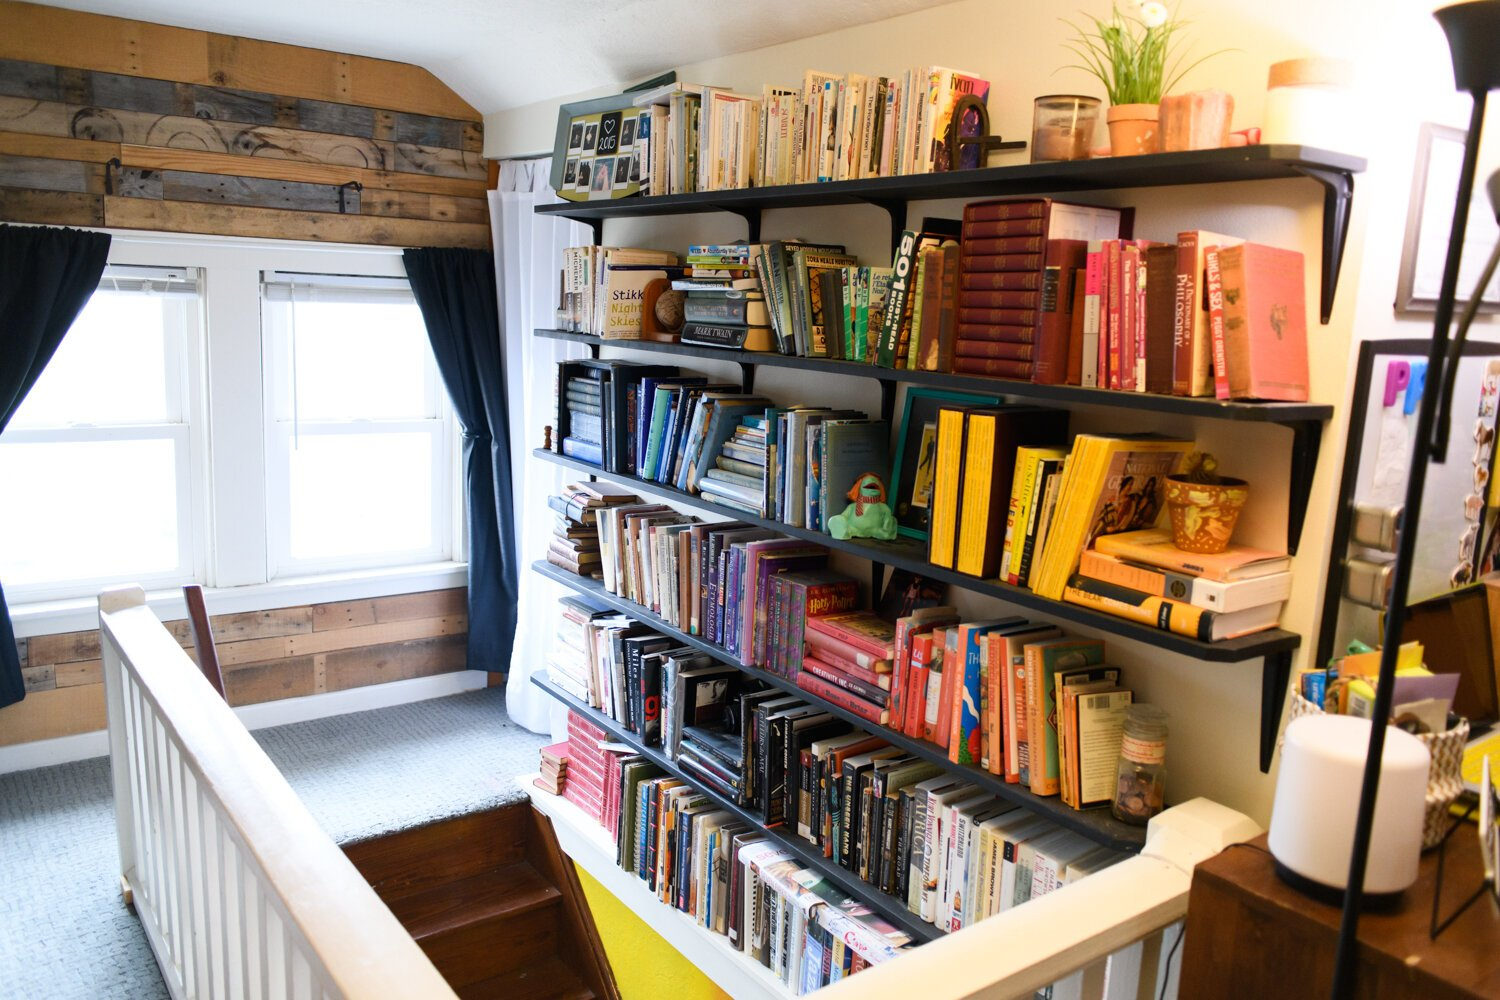 The loft area upstairs features a lot of books.